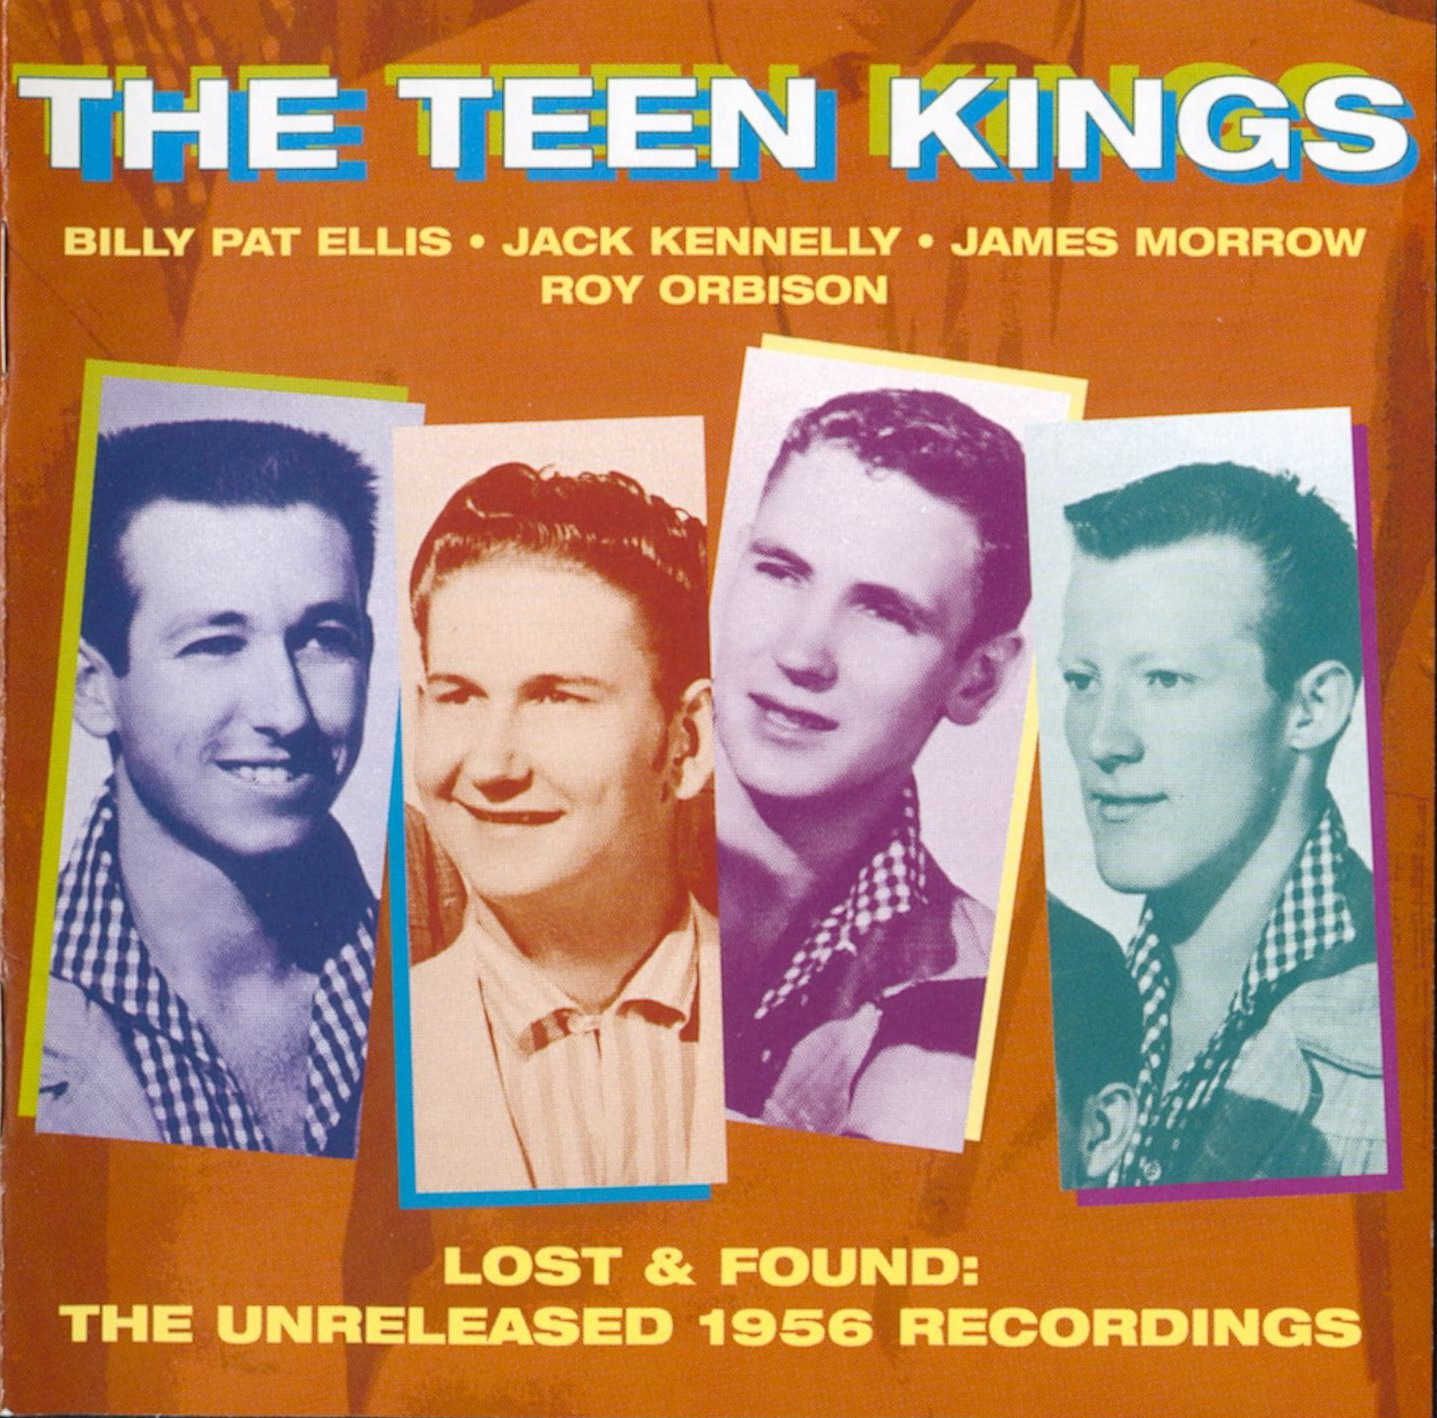 Phillips was impressed and offered the Teen Kings a contract in 1956.